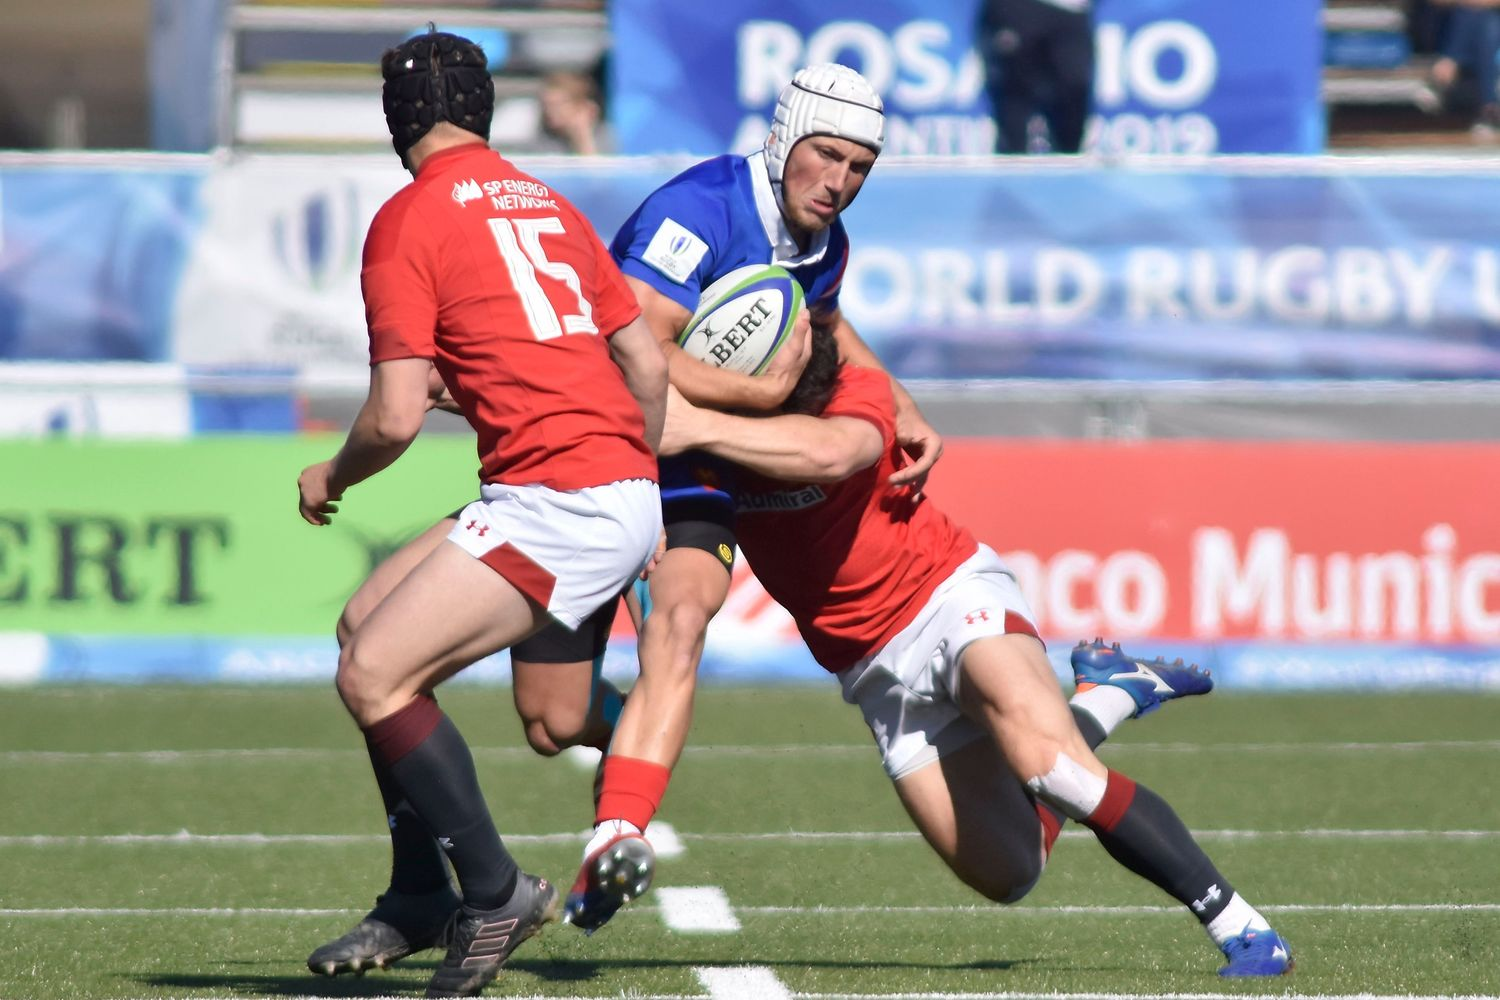 World Rugby U20 Championship 2019: France v Wales